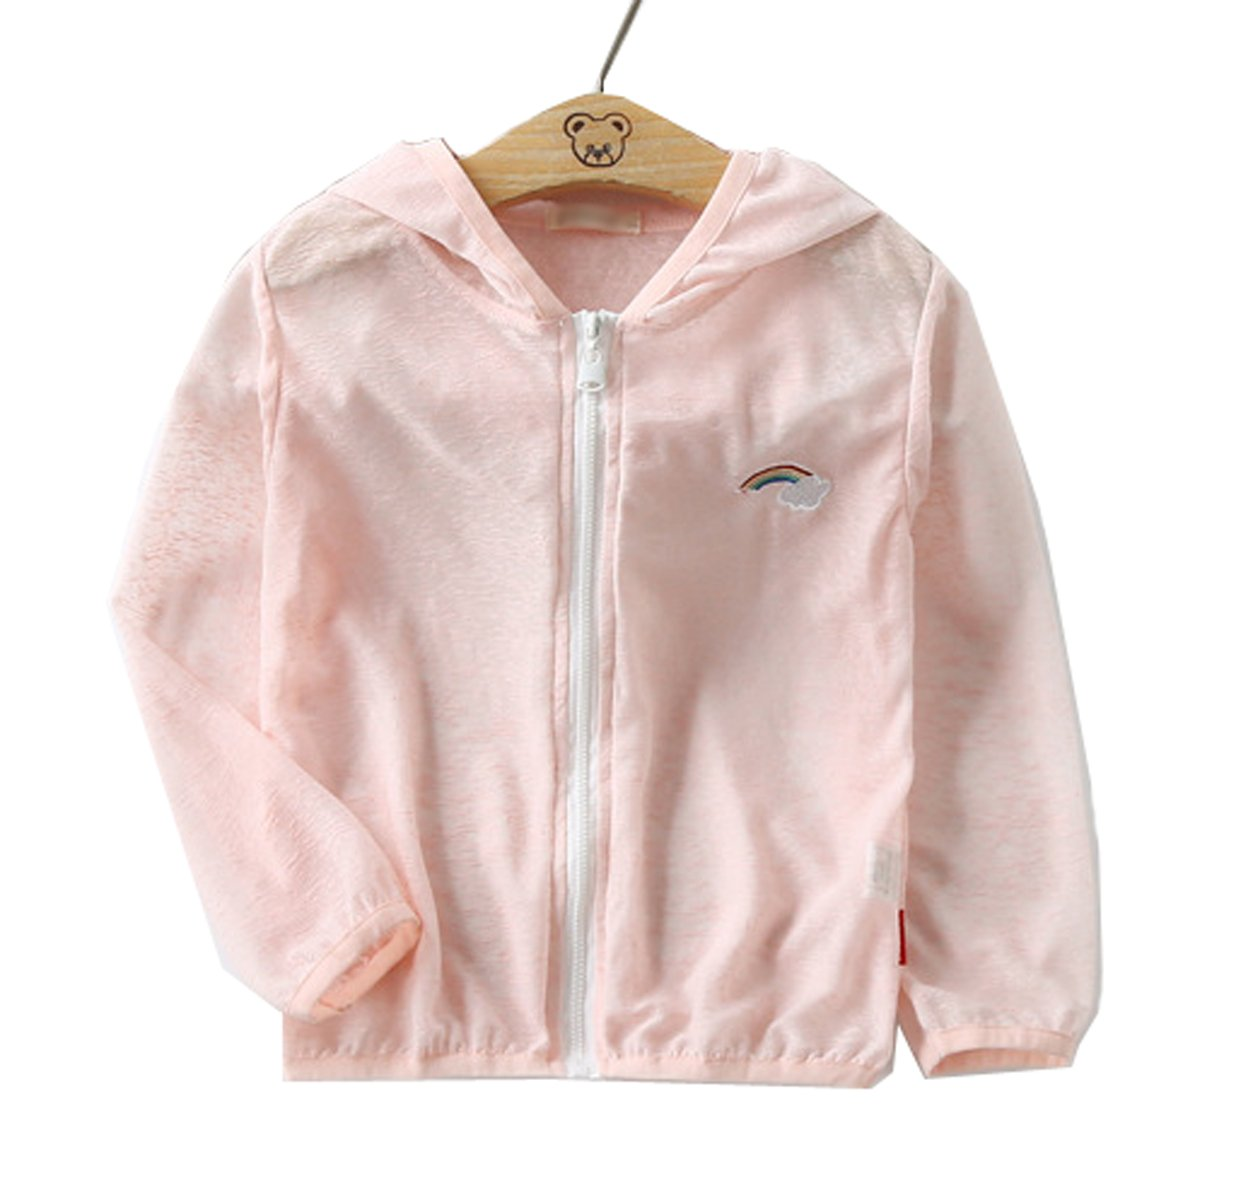 Qinni-shop Little Girls Boys Hooded Lightweight Long Sleeve Summer Jacket (Pink, 2T)